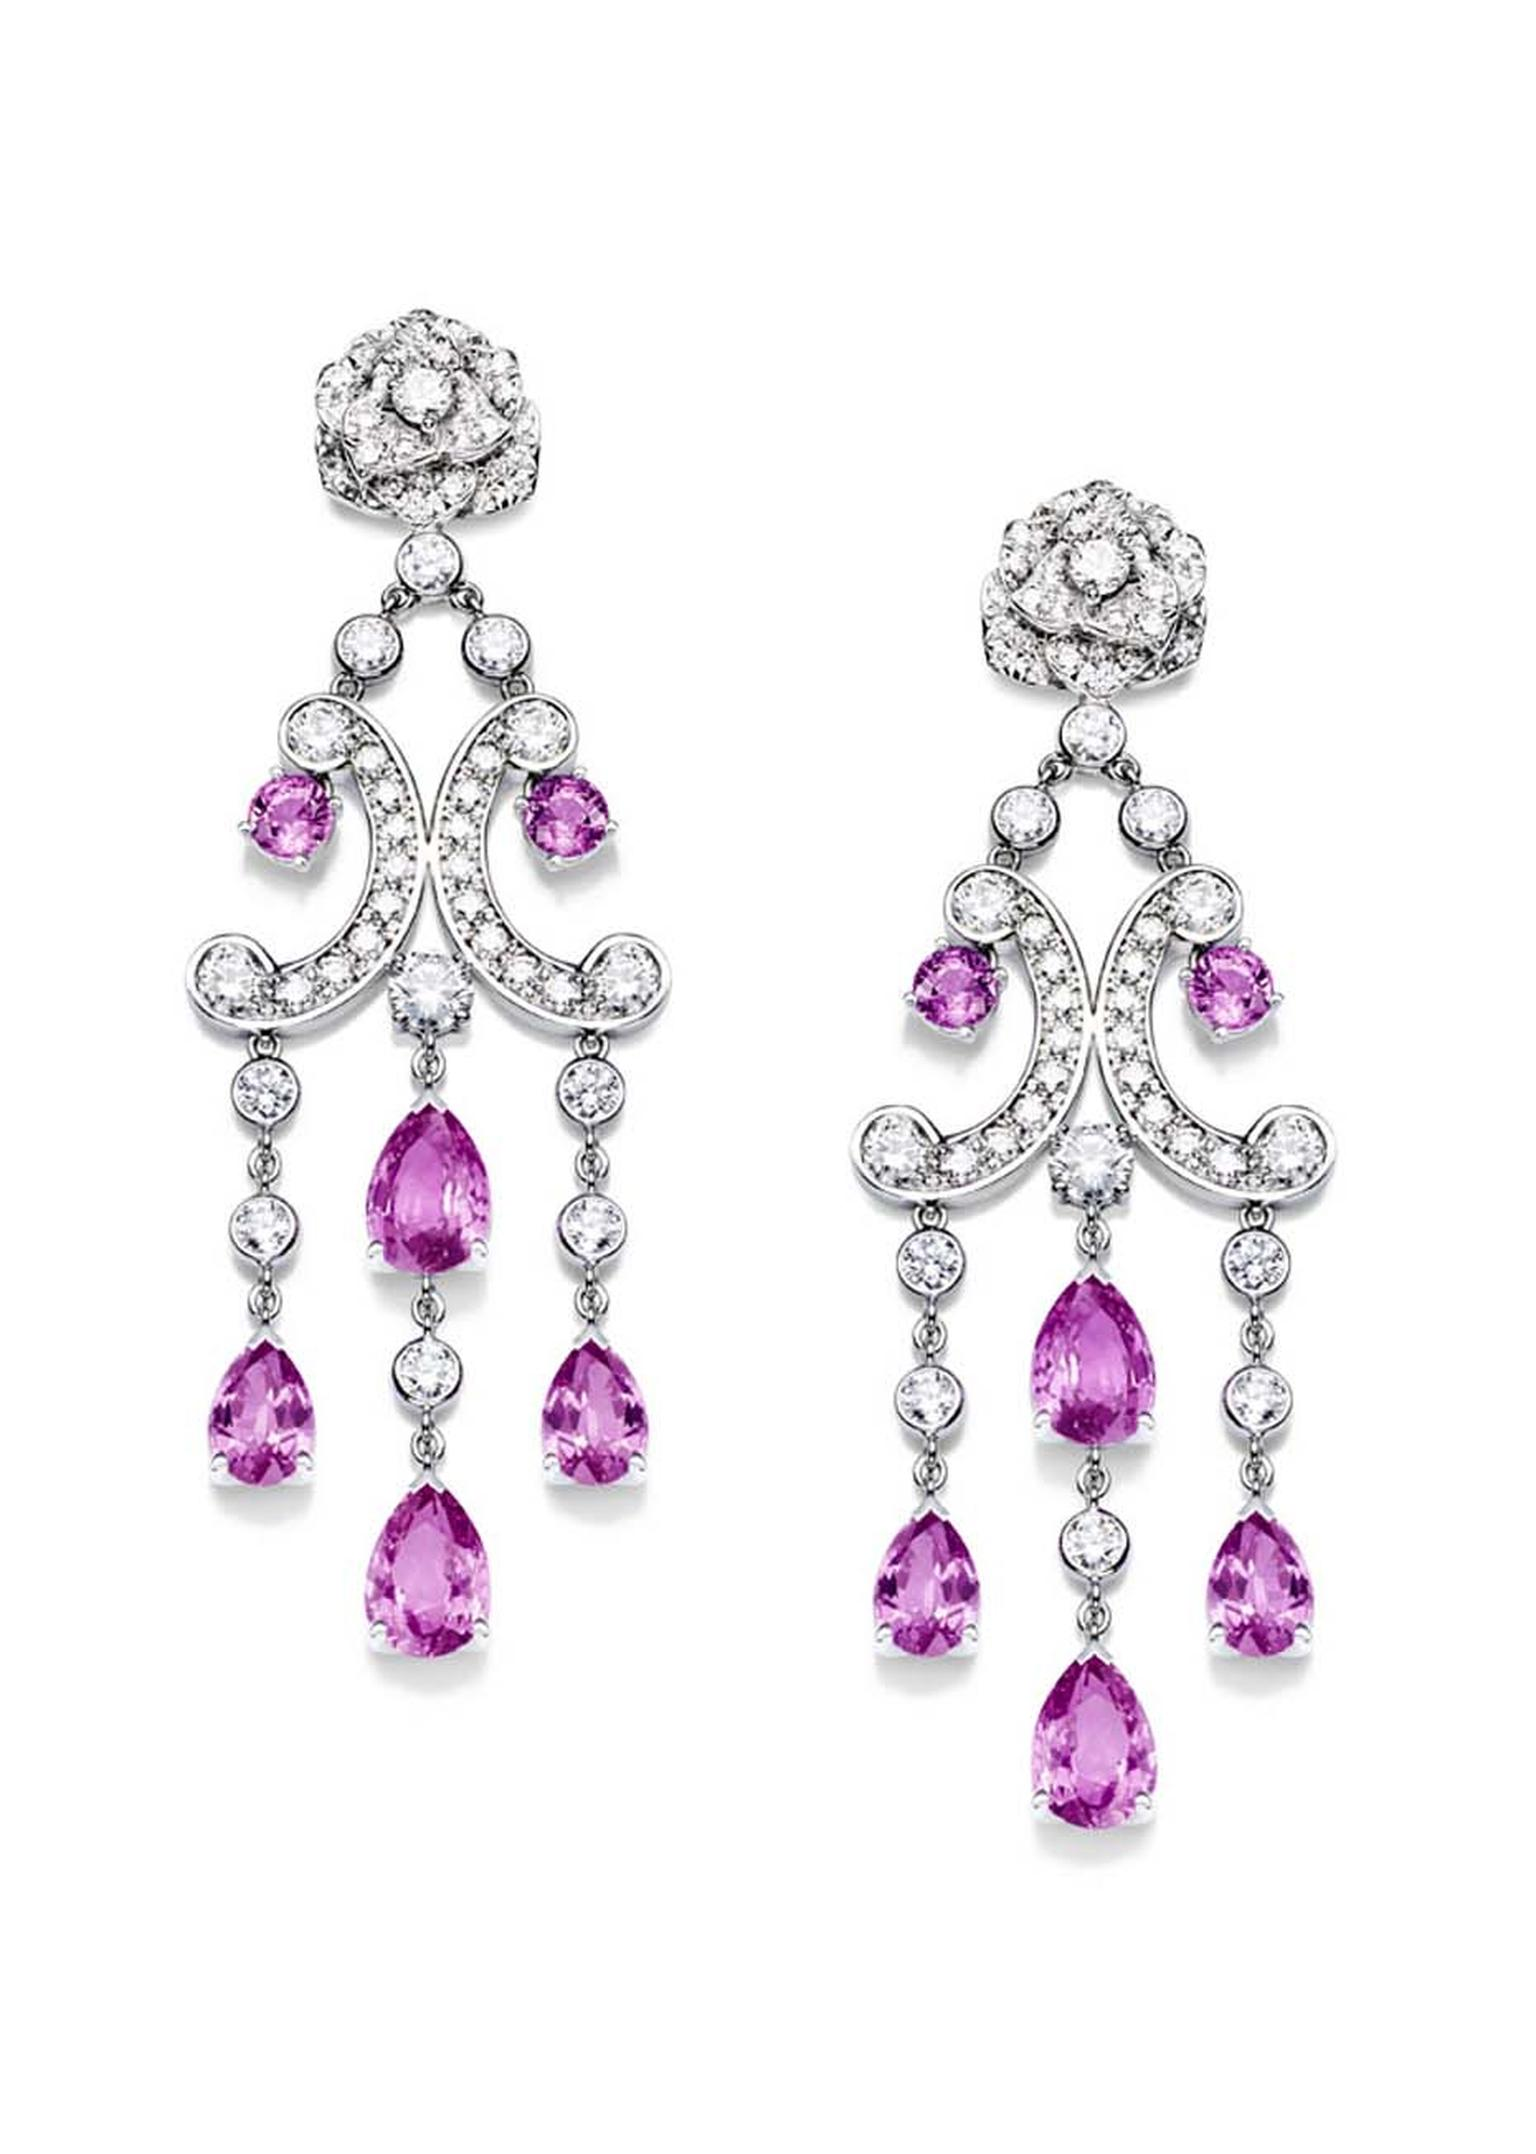 Piaget Rose Passion earrings in white gold, with diamonds and pink sapphires